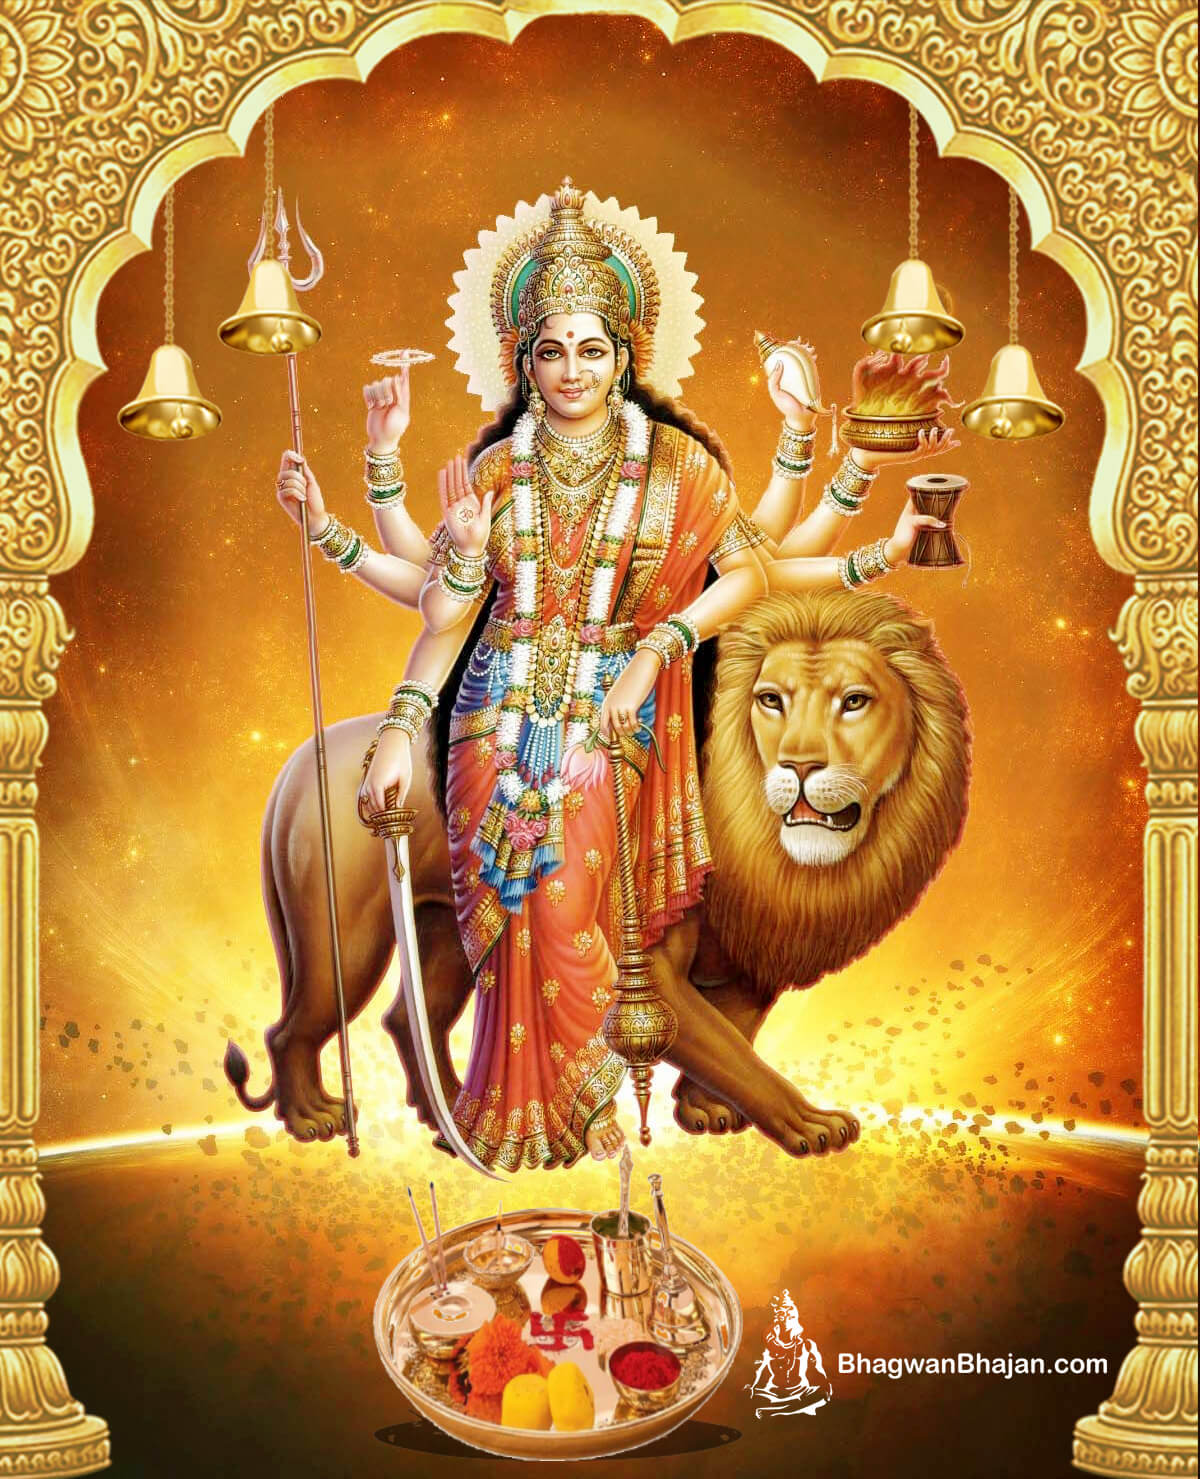 Latest Maa Durga Wallpaper Free Download 2020